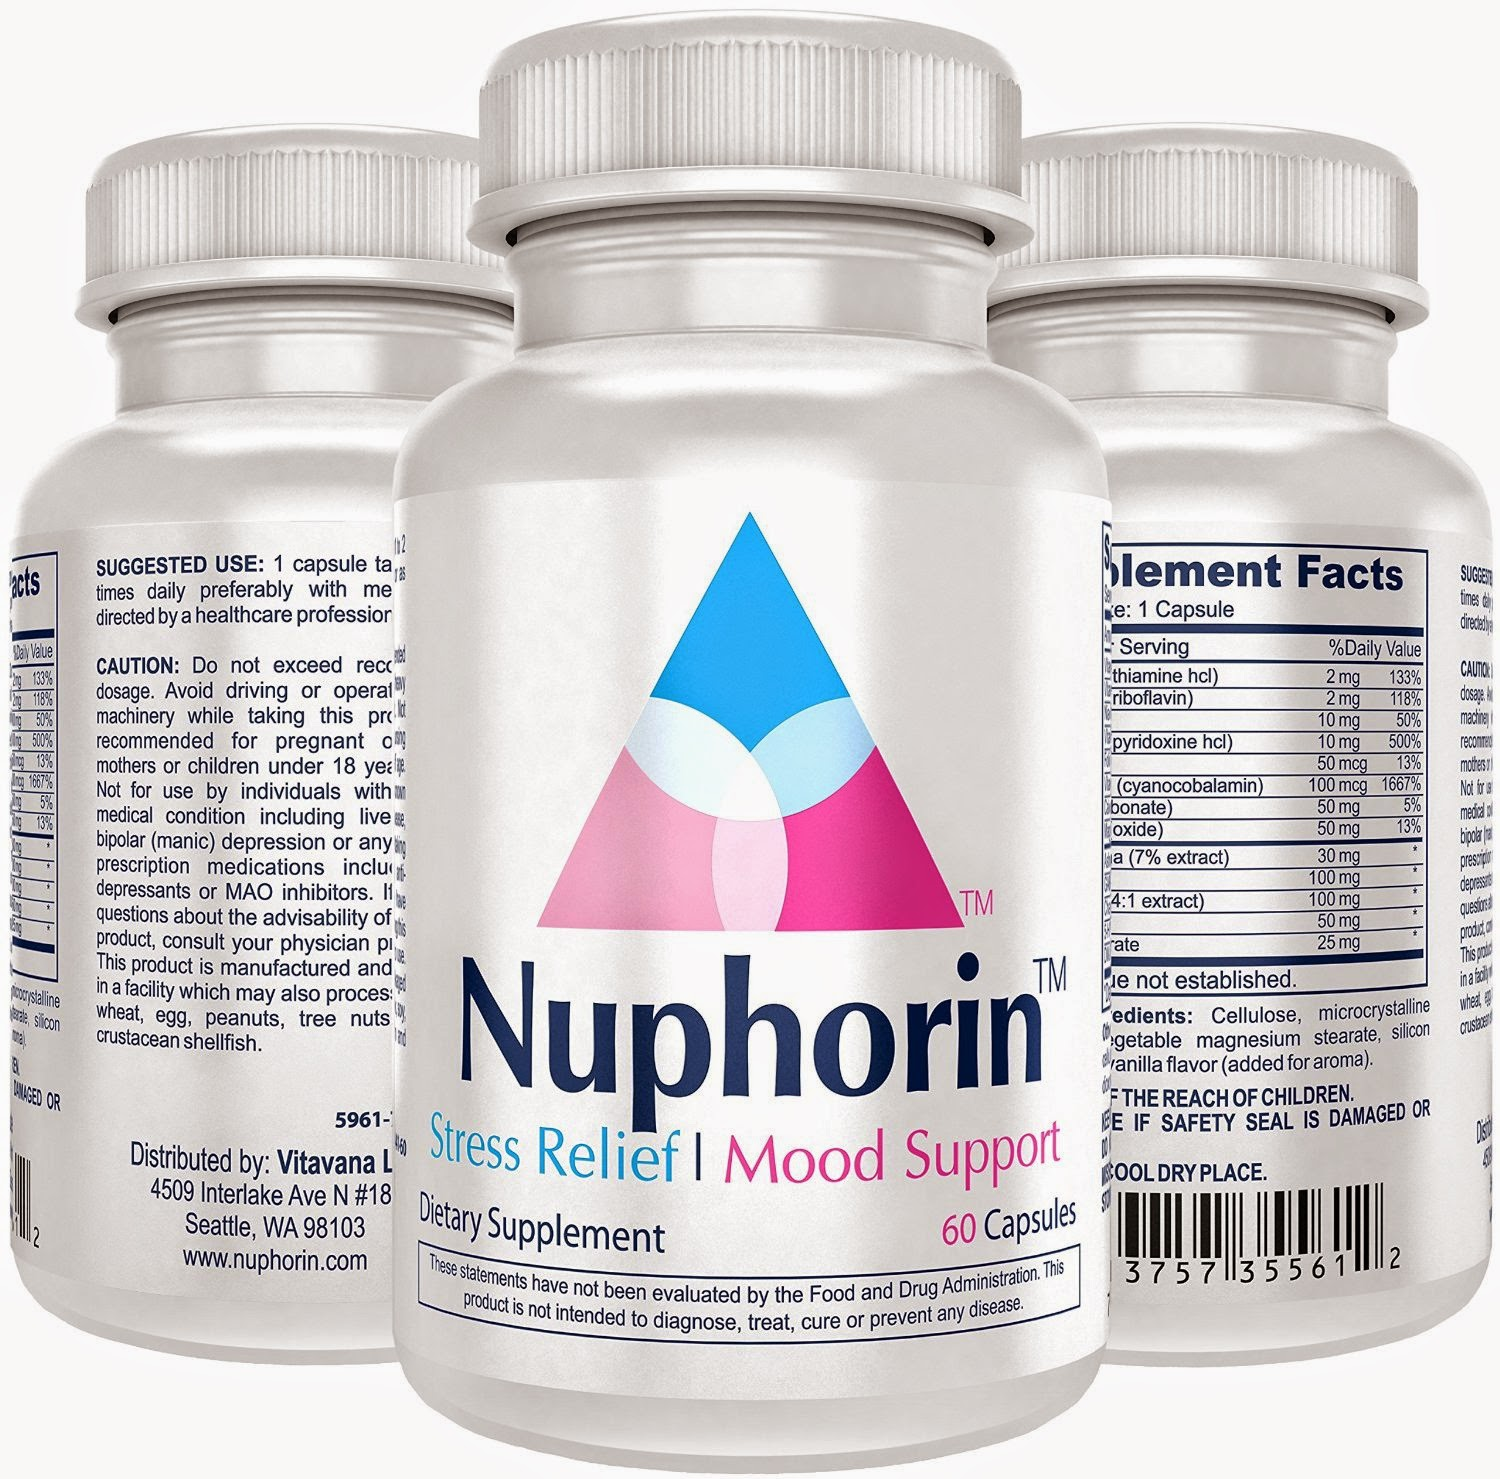 http://www.amazon.com/nuphorin-fast-acting-pharmaceutical-anti-anxiety-ashwagandha/dp/b00g705gbk